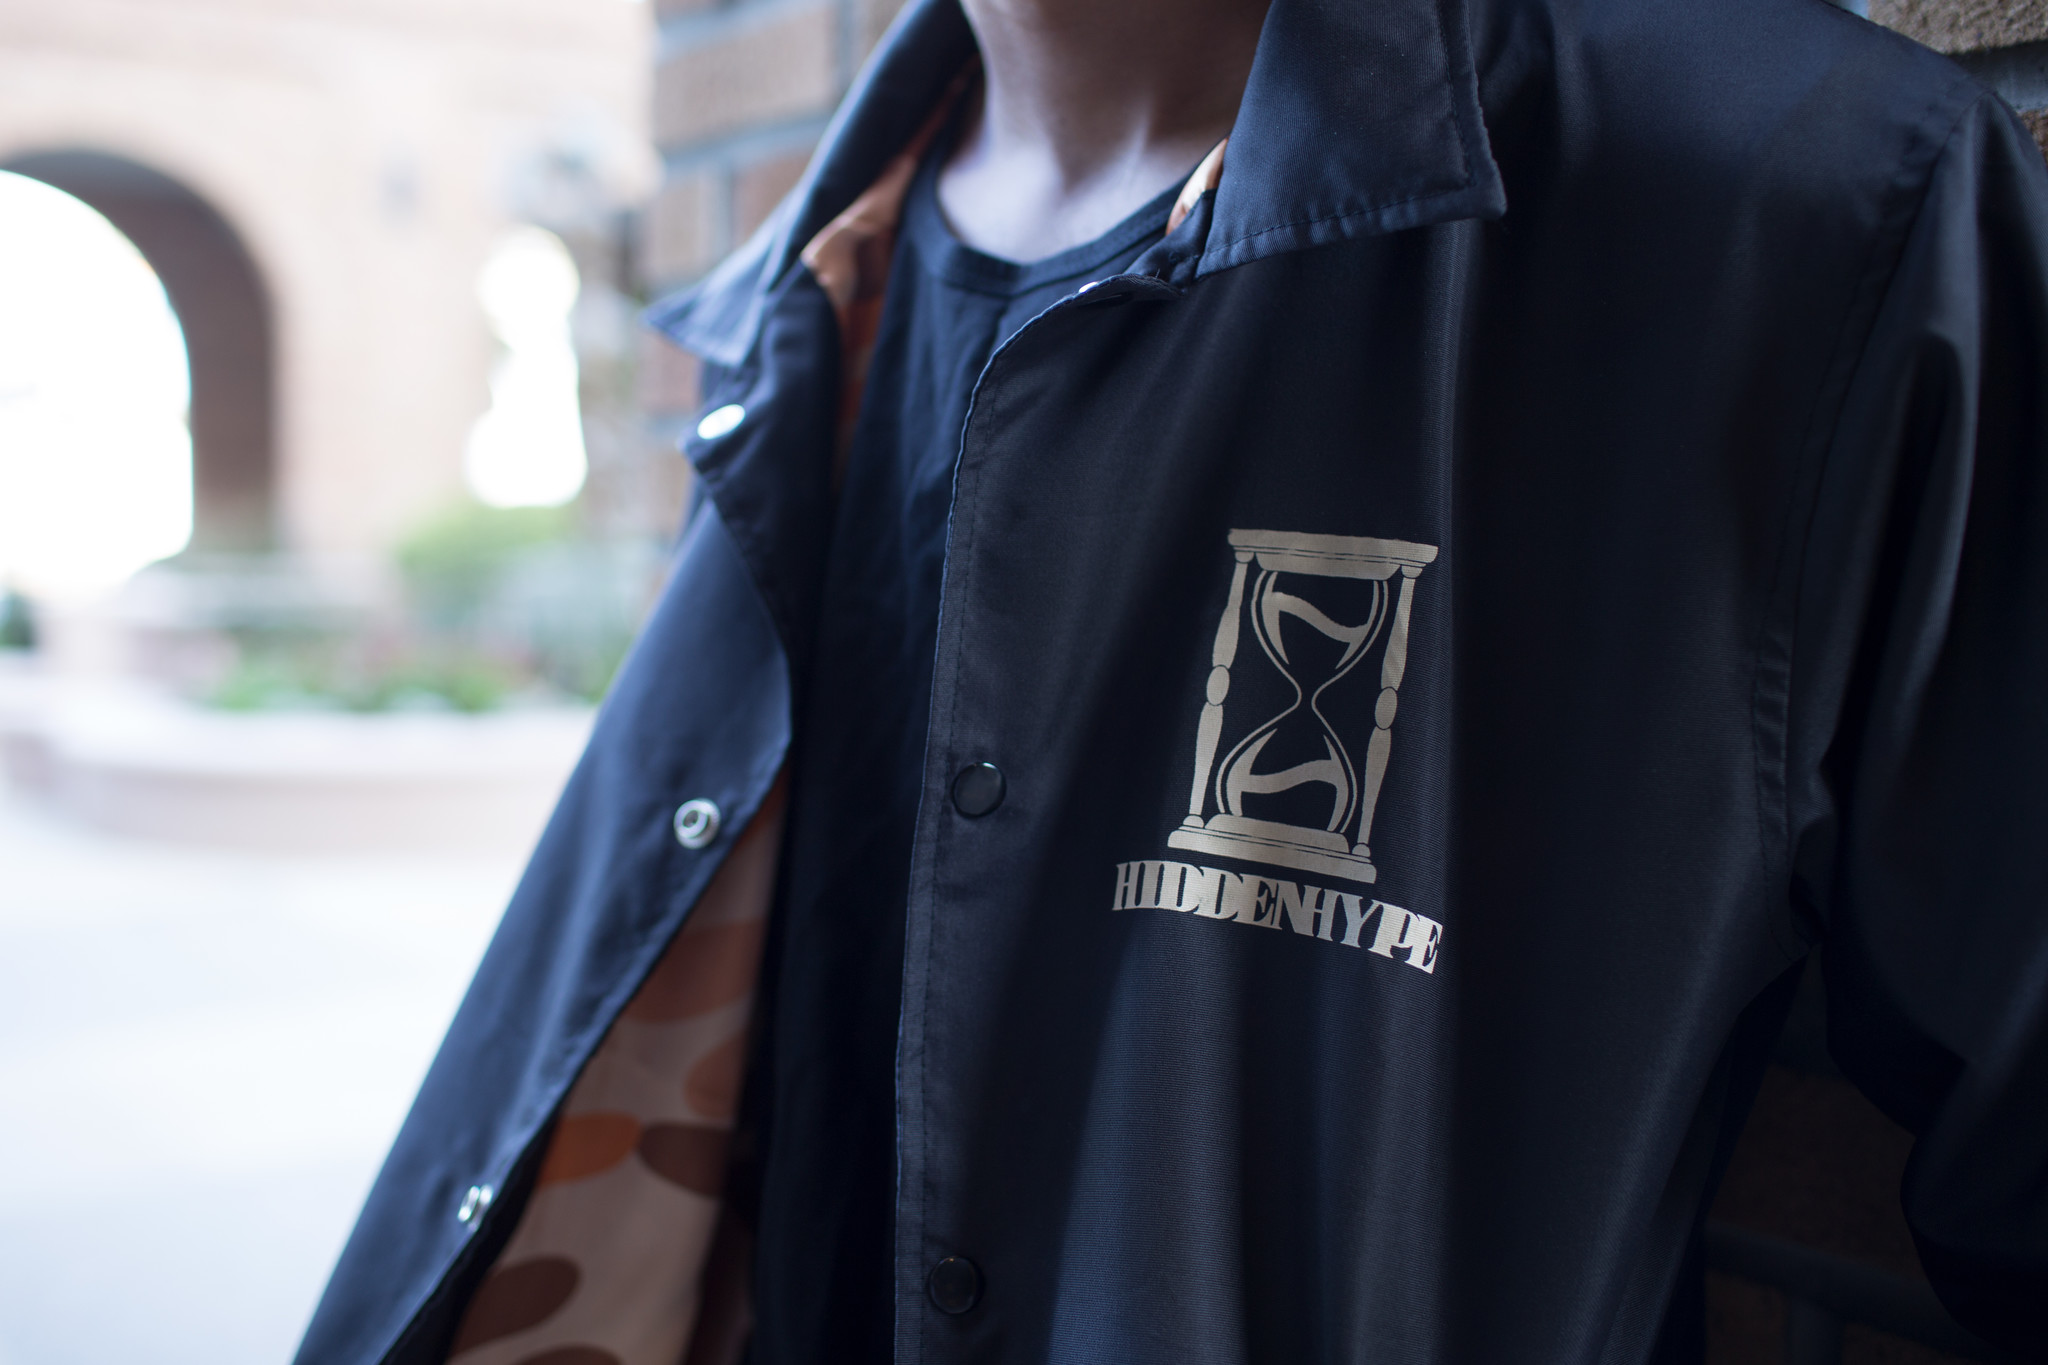 Hidden Hype Coach Jacket Giant Underdog Showbanga